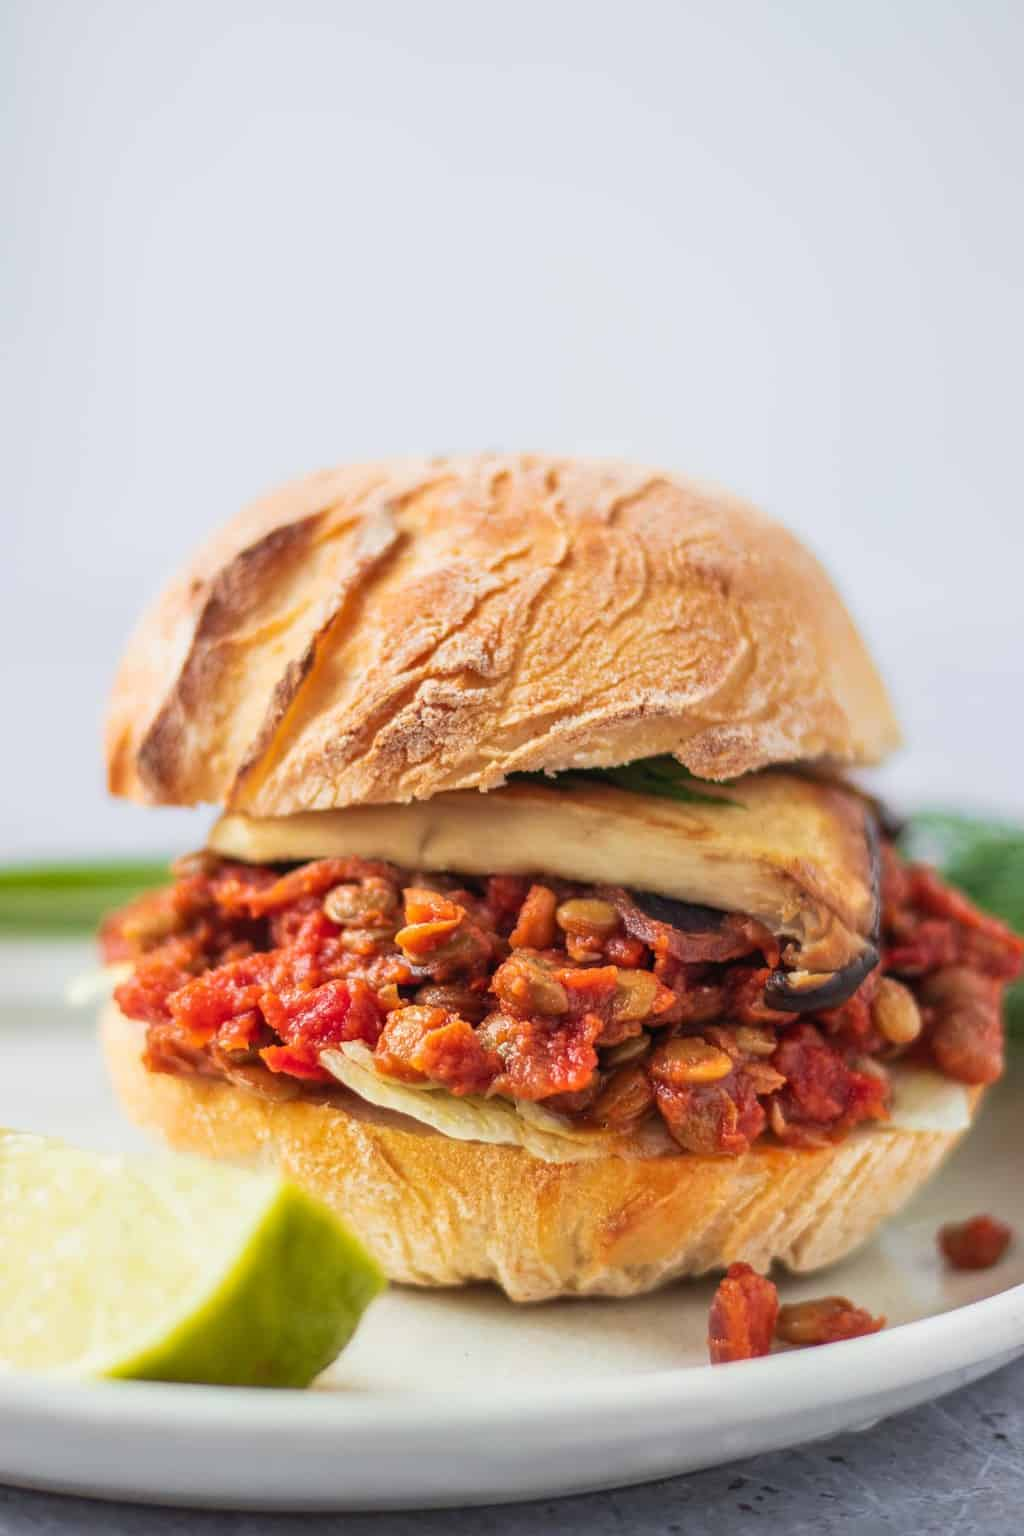 Closeup of sloppy joe burger